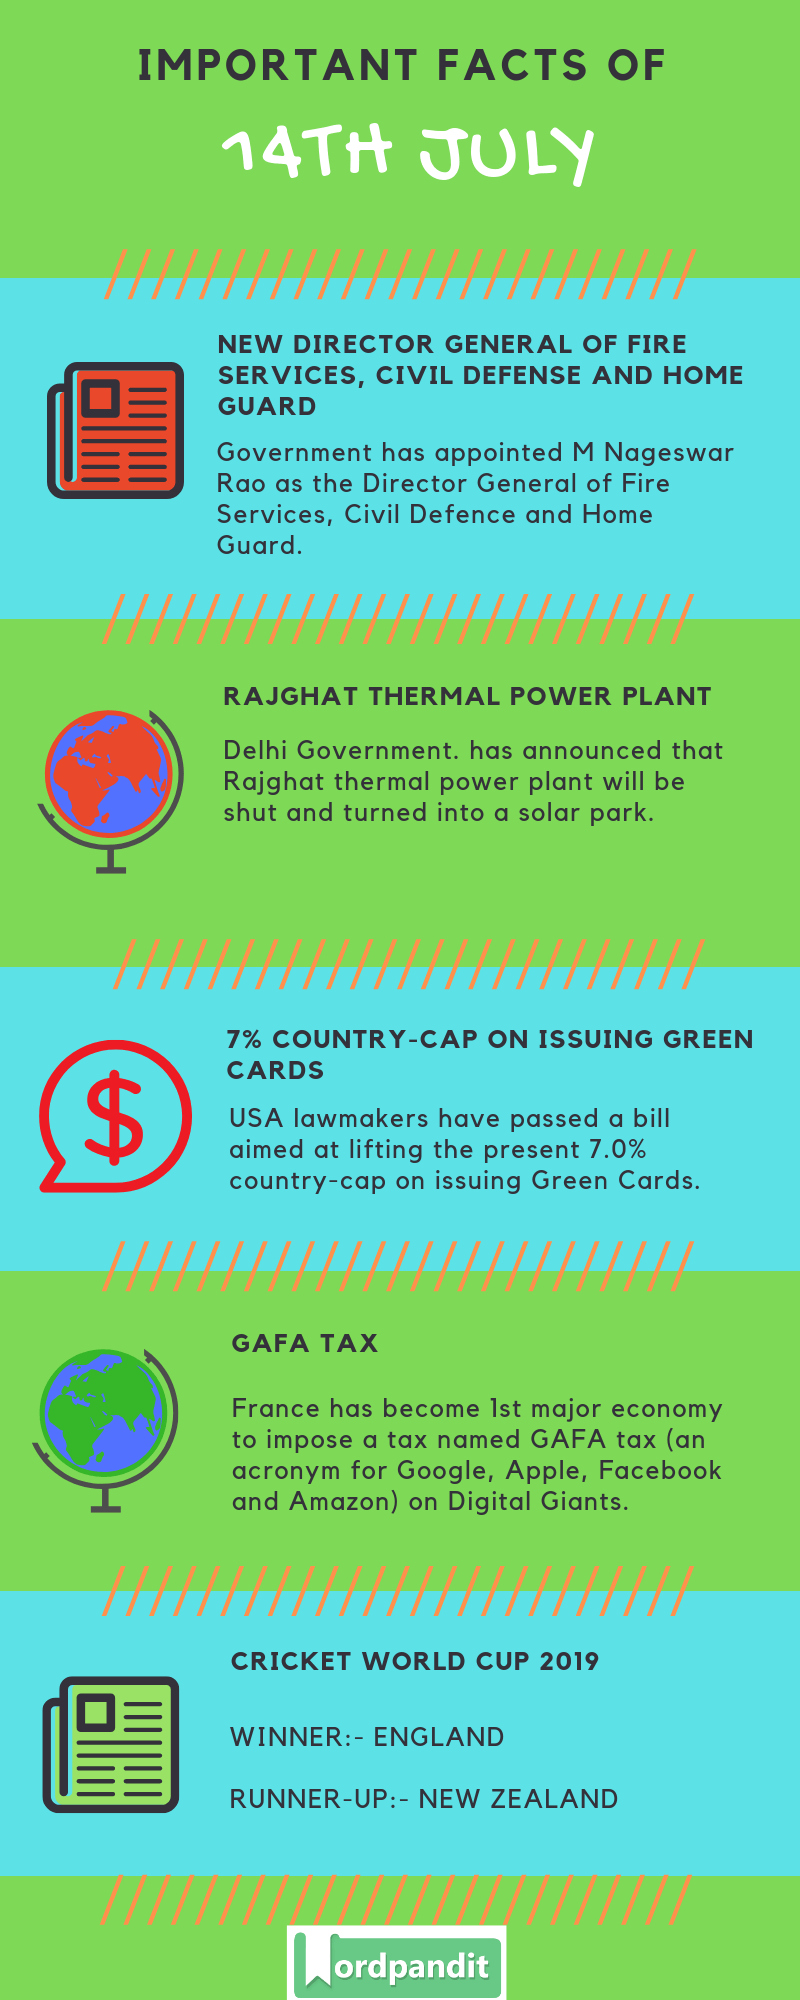 Daily Current Affairs 14 July 2019 Current Affairs Quiz 14 July 2019 Current Affairs Infographic